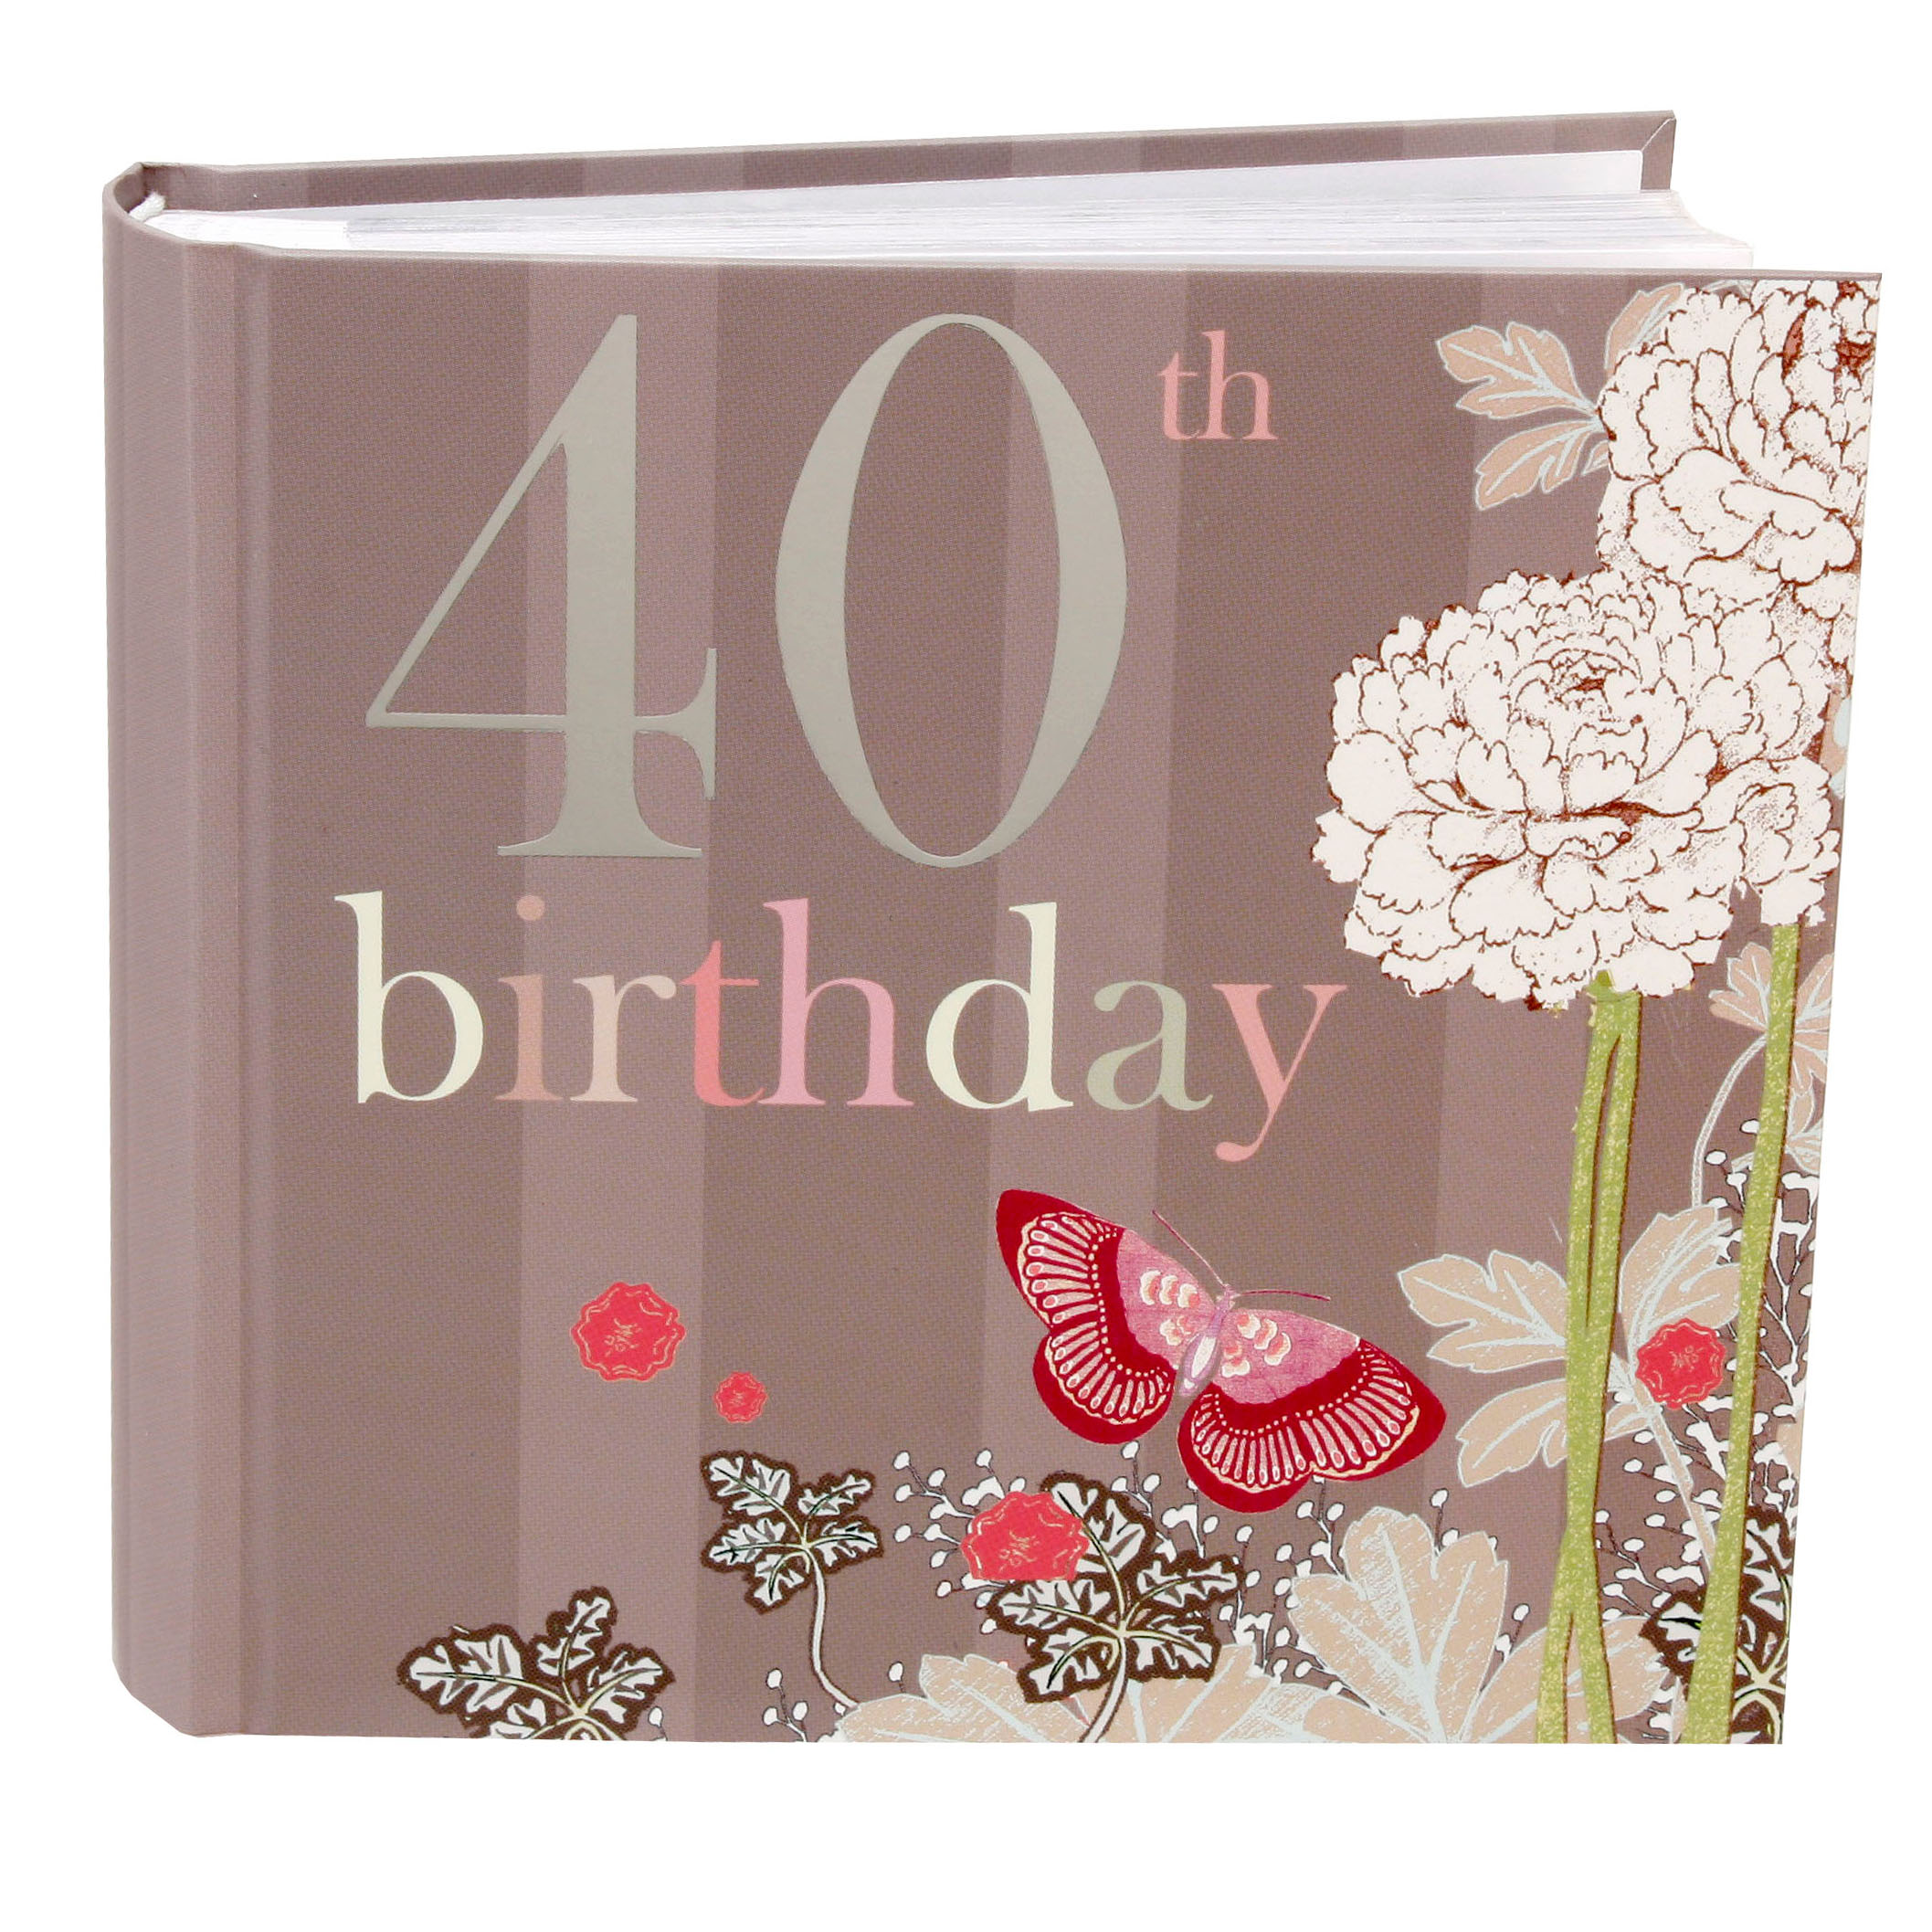 40th Birthday Photo Album - Butterfly Design - 40th Birthday Gifts